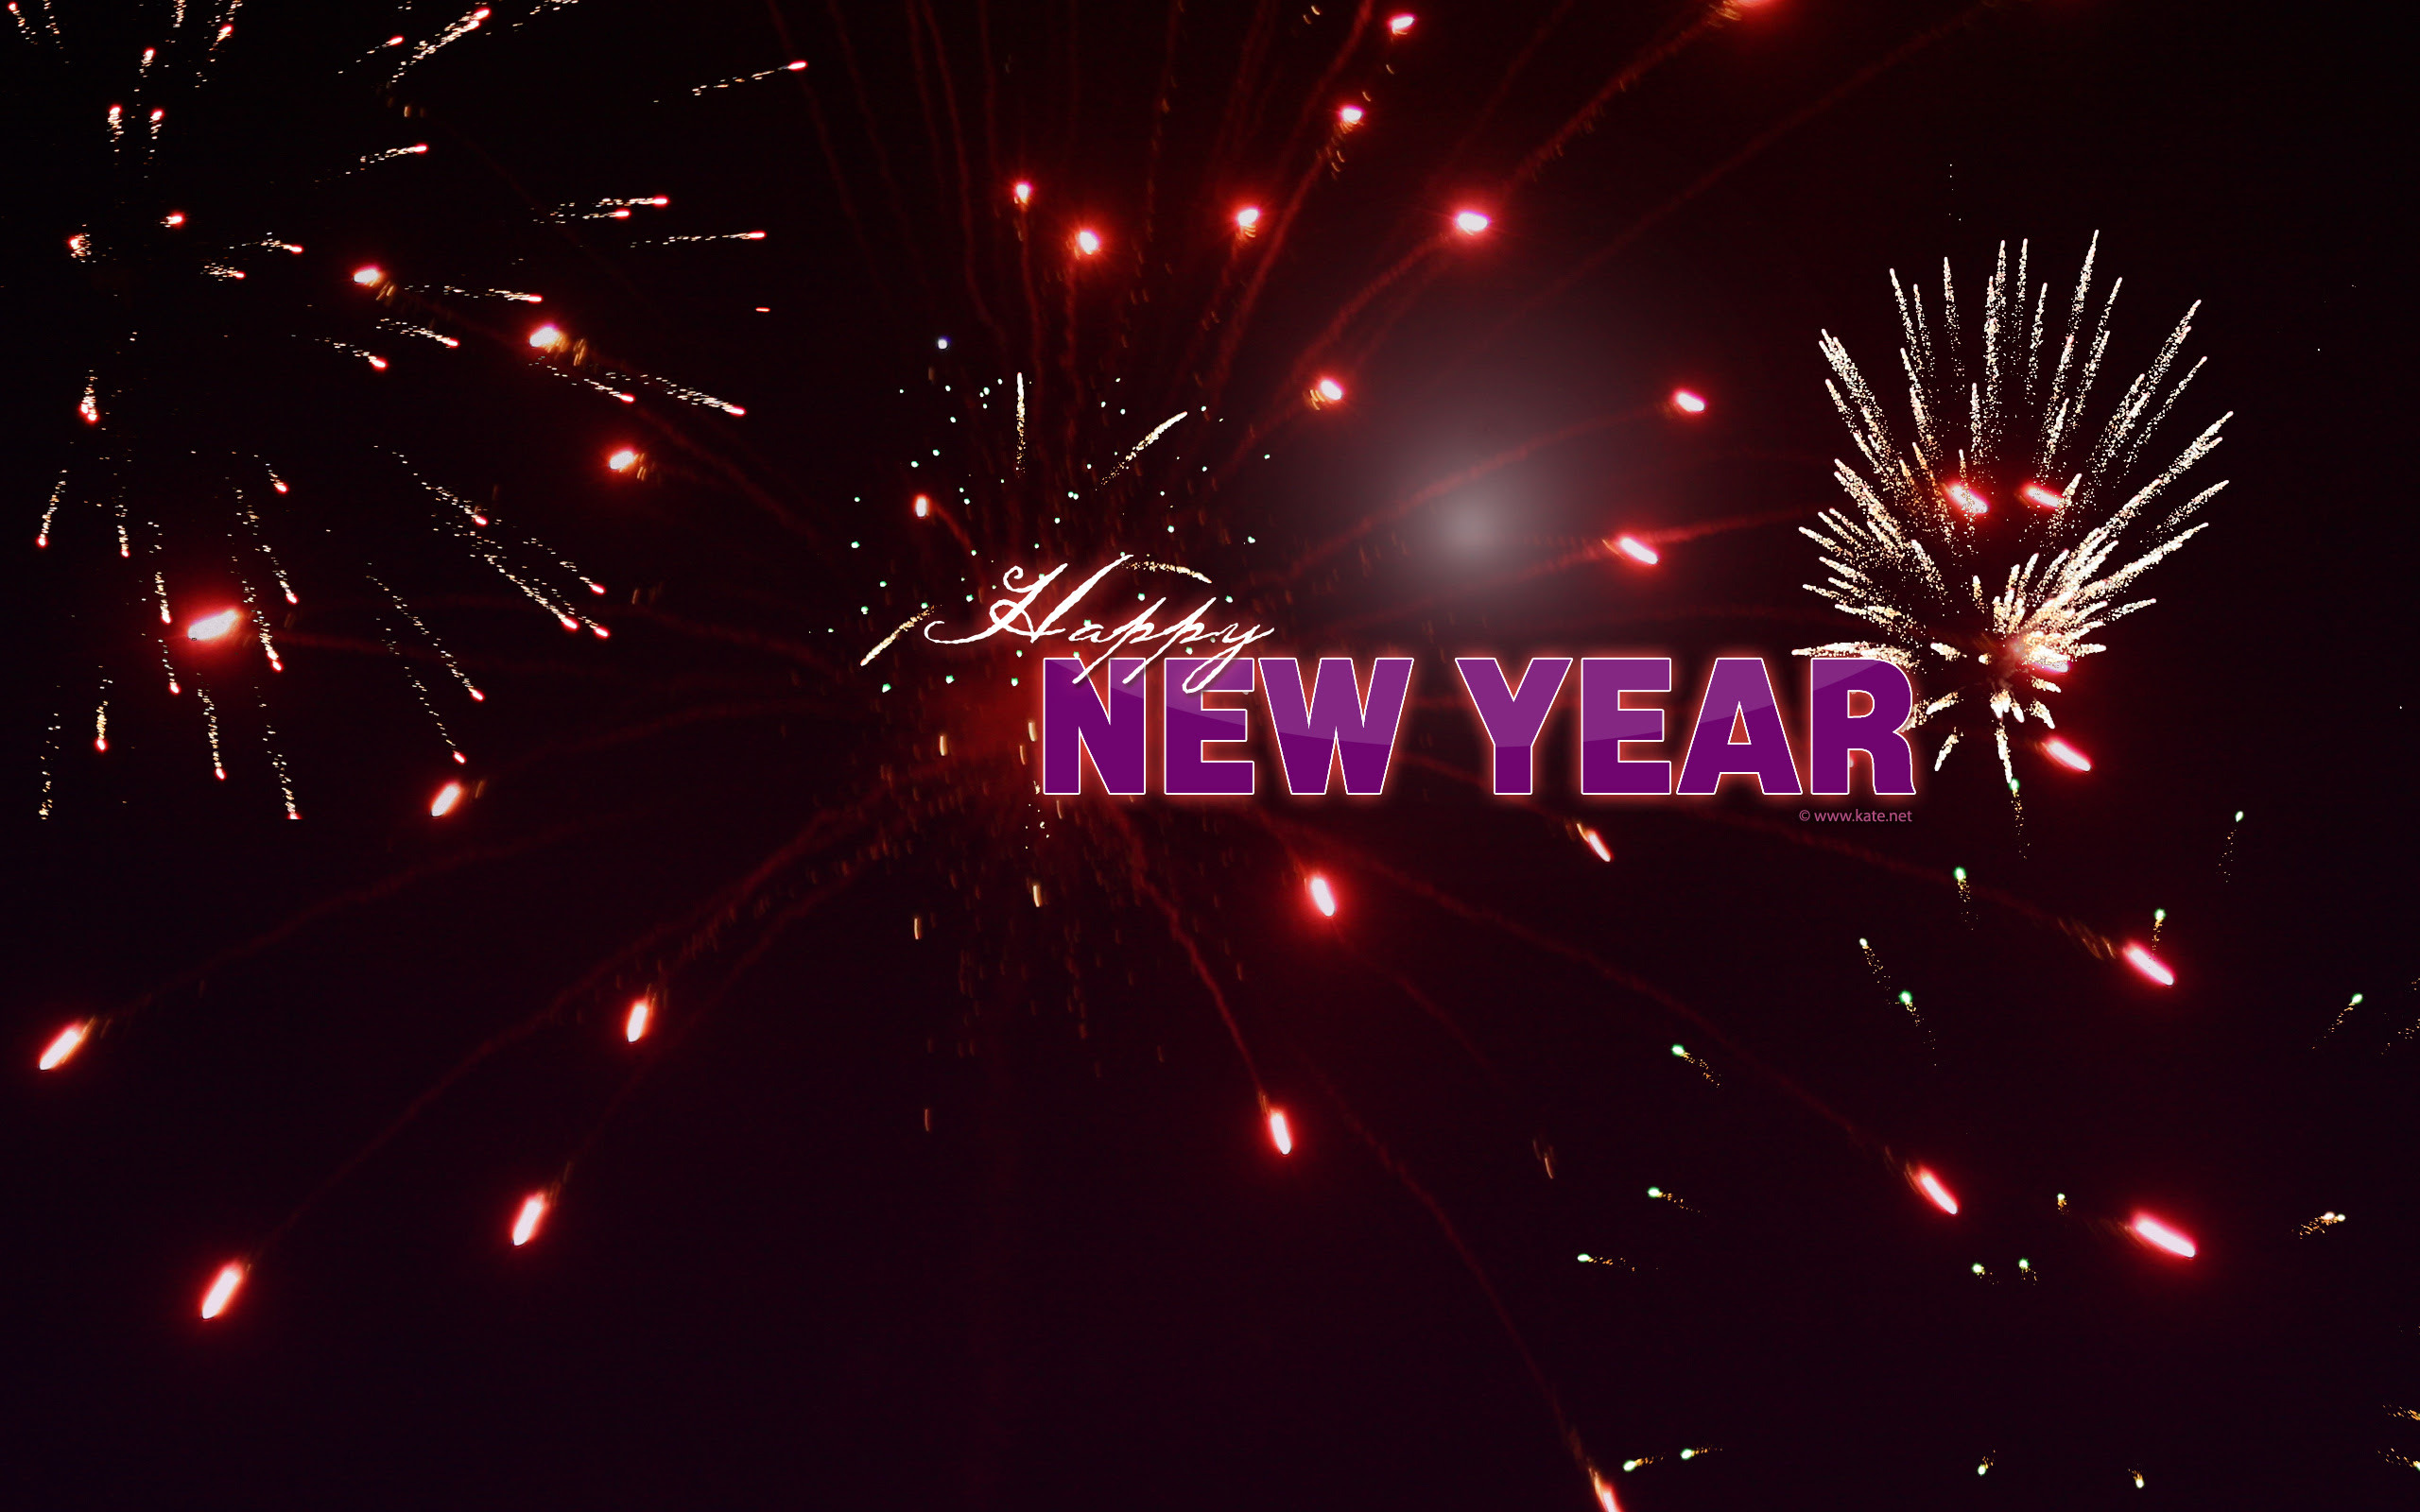 New Year Wallpapers 2016 New Year S Backgrounds From Kate Net